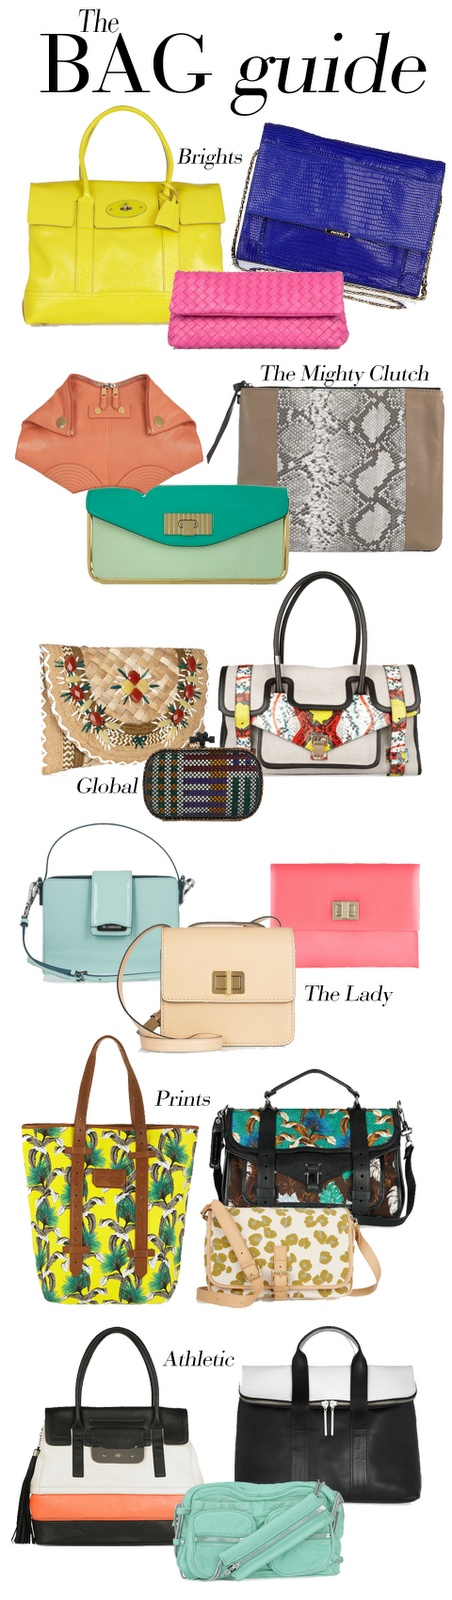 The Bag Guide